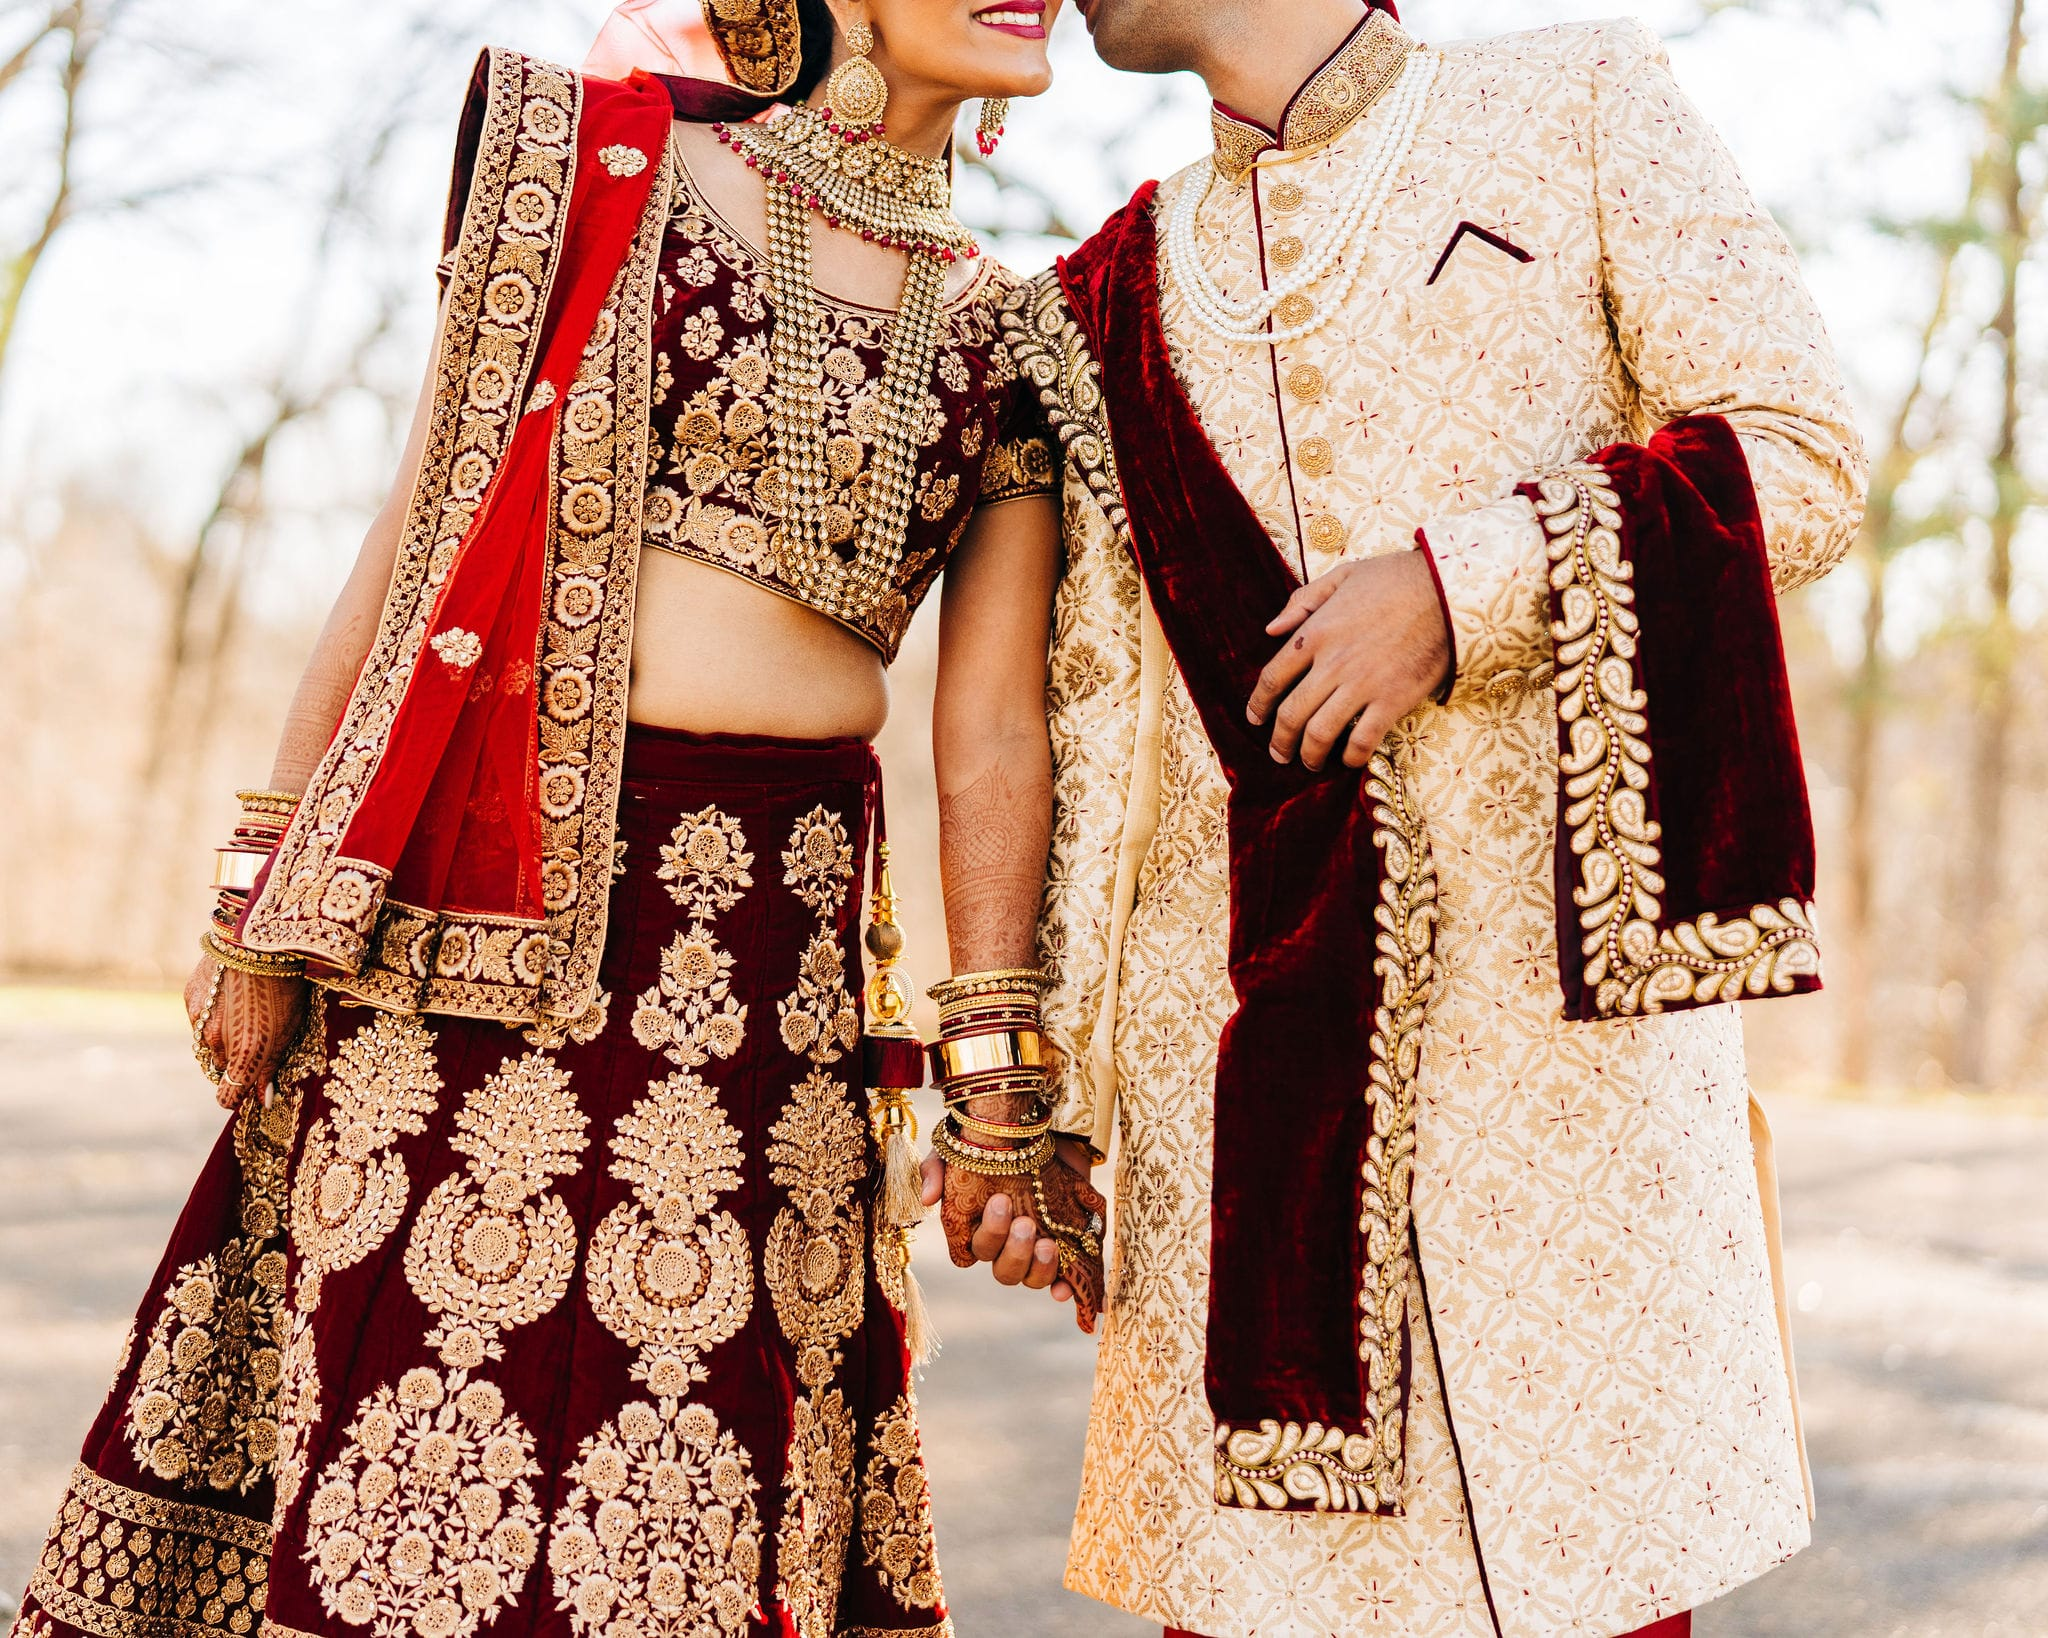 indian-wedding-los-angeles-photographer-107.jpg